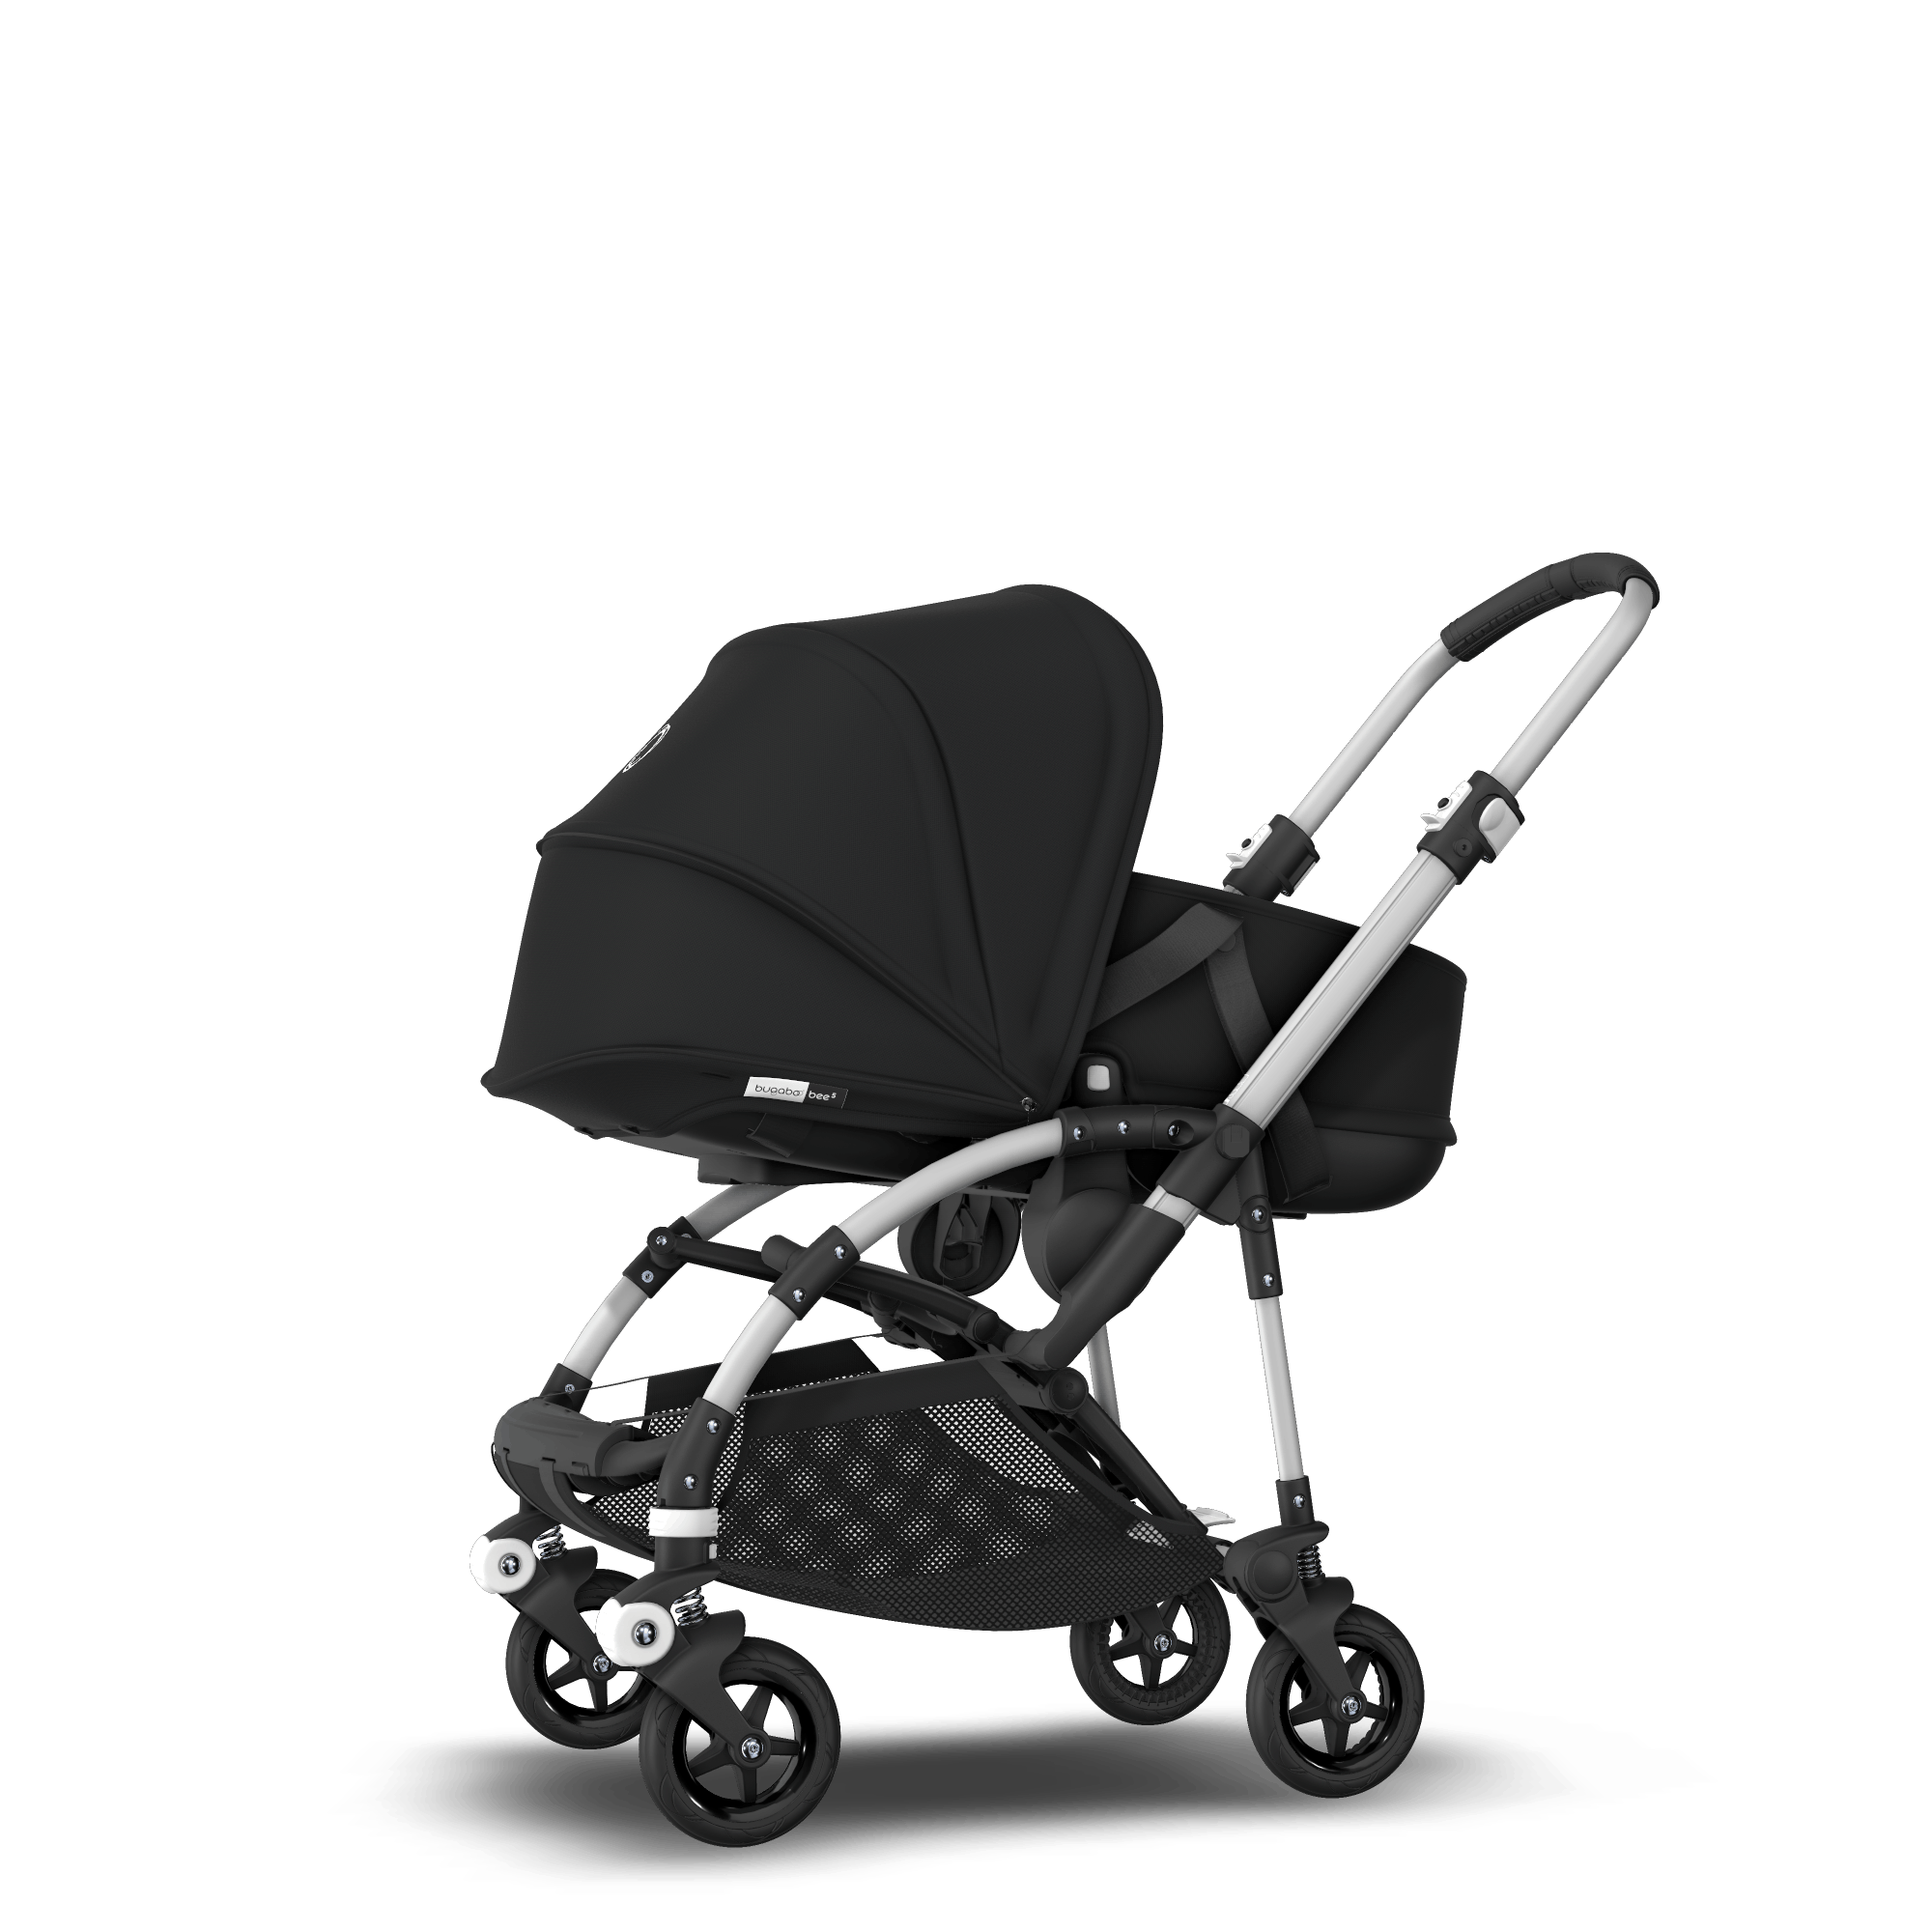 Baby Plus Buggy Bugaboo Bee5 Seat And Bassinet Stroller Bugaboo